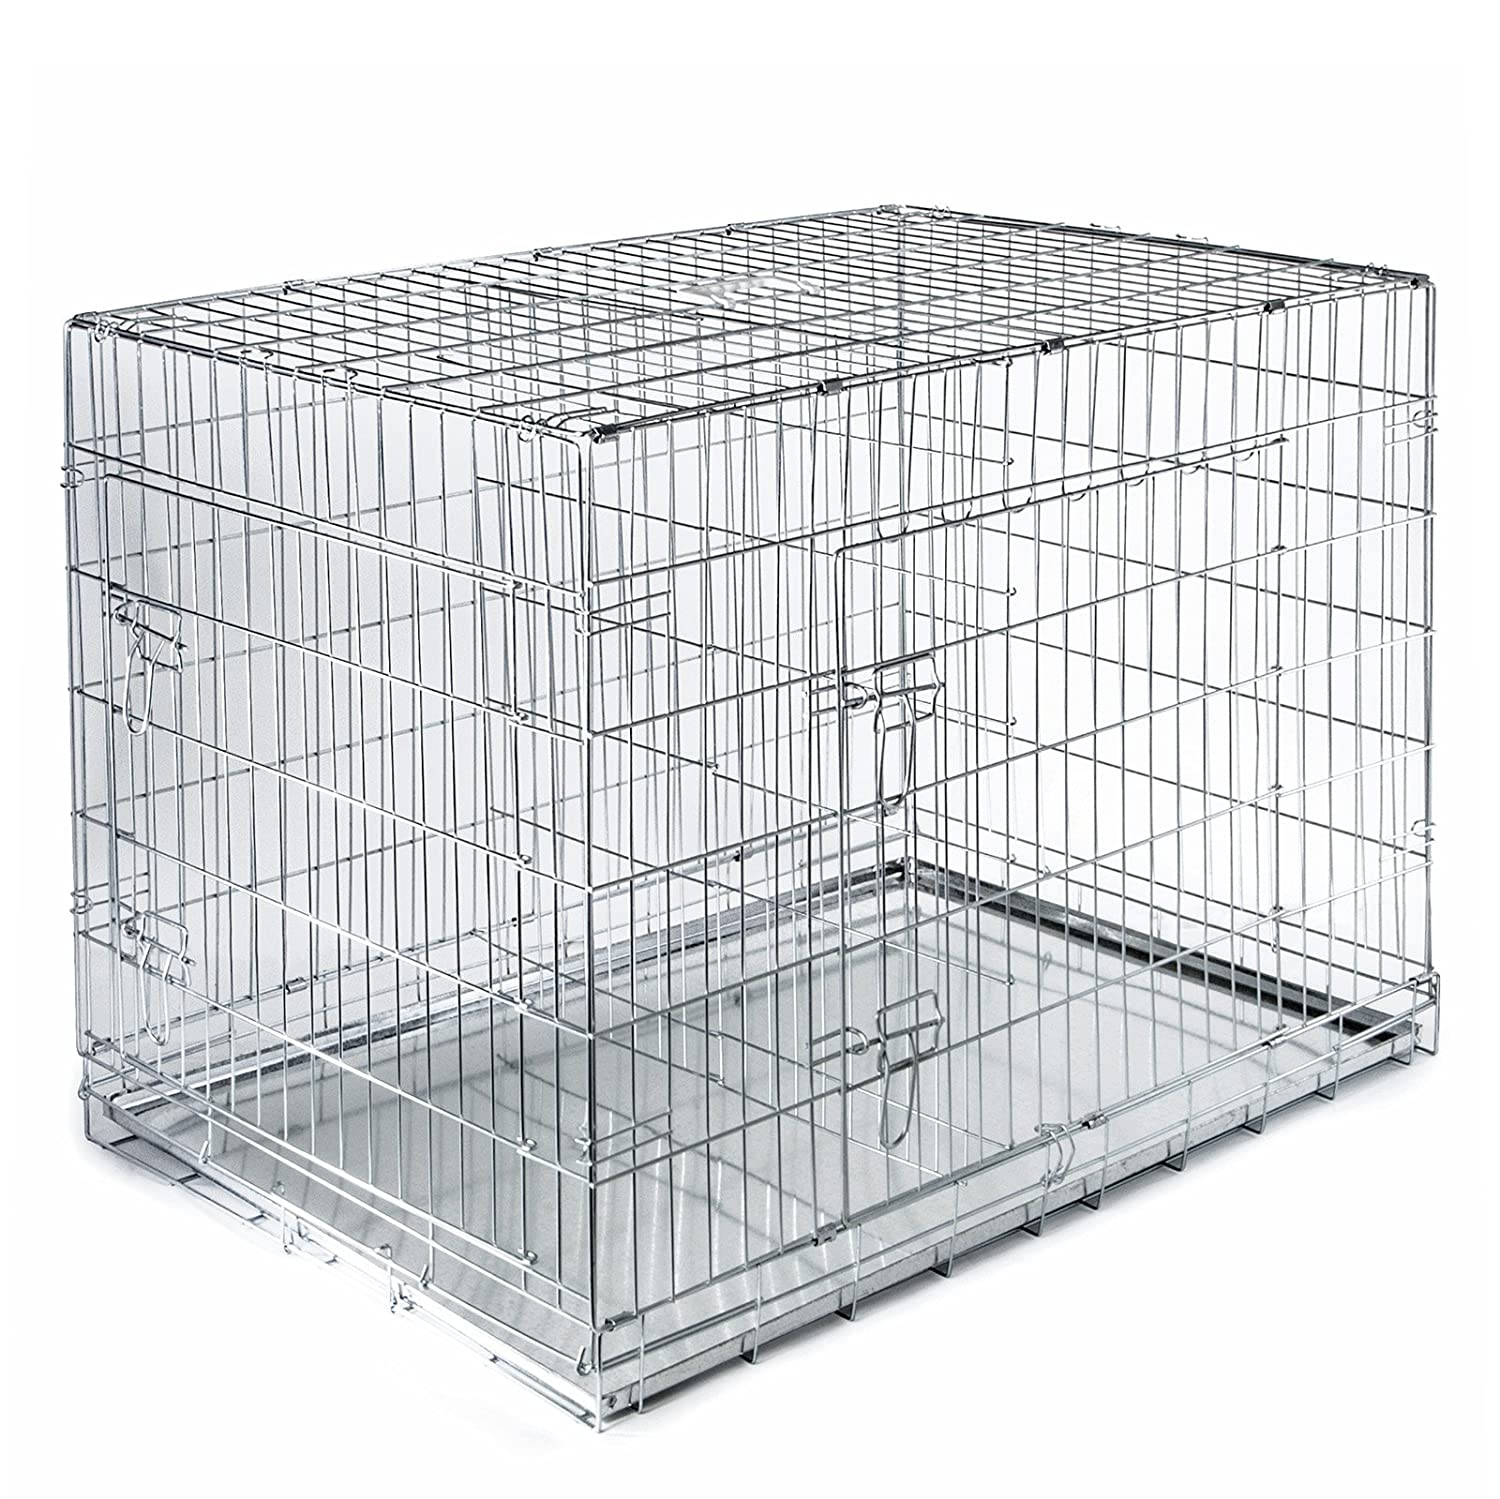 Amazon.com  SmithBuilt Folding Metal Dog Crate w/ Divider - Double Door Cage - 42  Length in Silver  Pet Crates  Pet Supplies  sc 1 st  Amazon.com & Amazon.com : SmithBuilt Folding Metal Dog Crate w/ Divider - Double ...